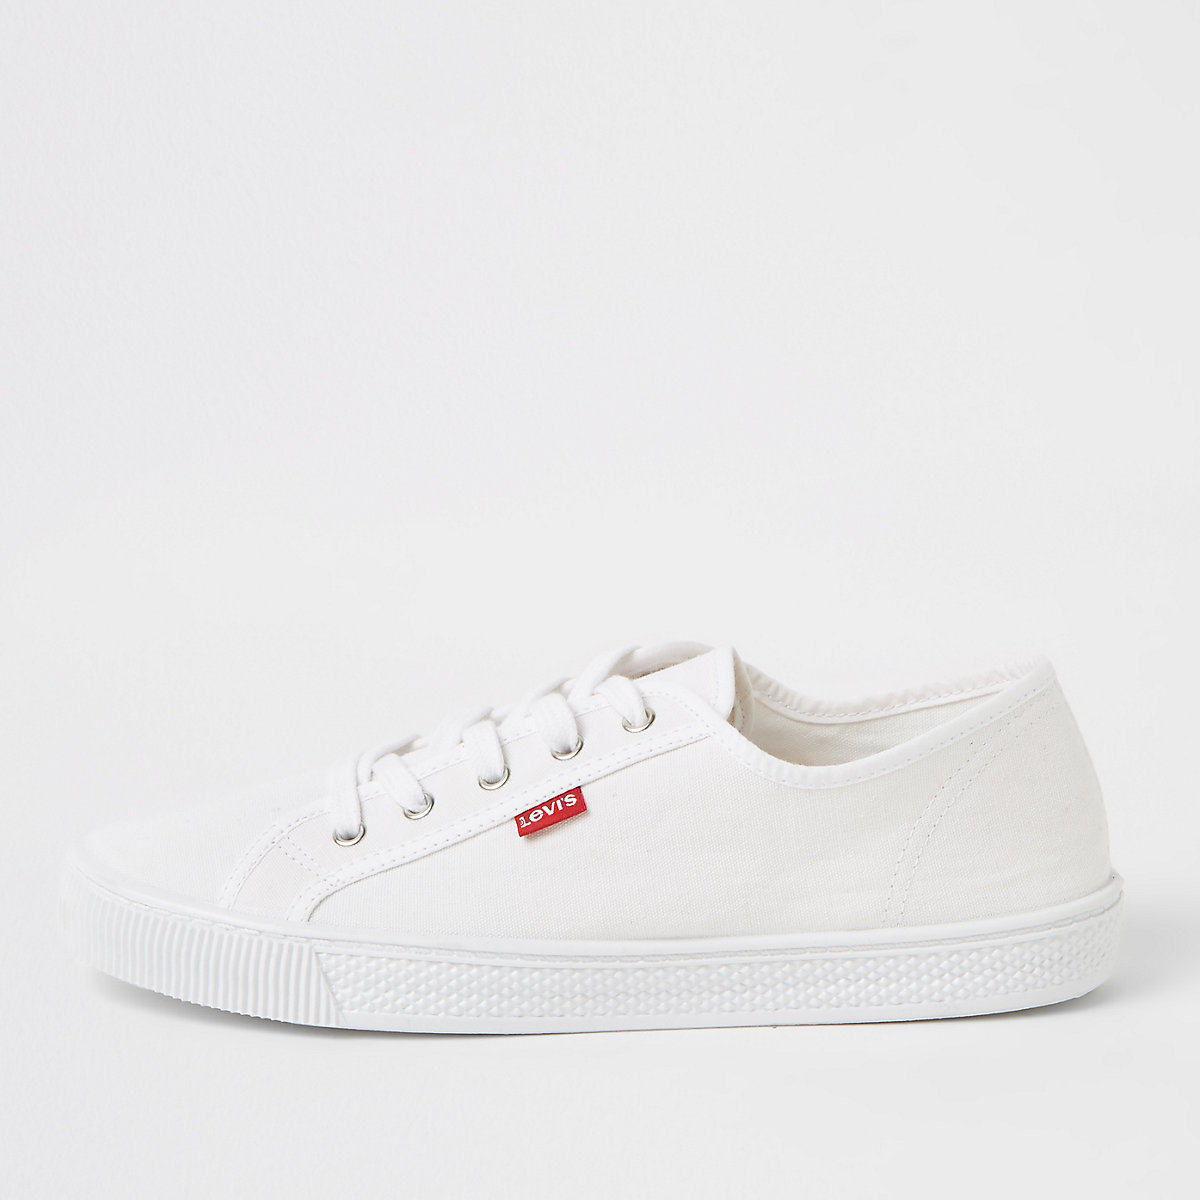 Levi's white lace-up canvas trainers